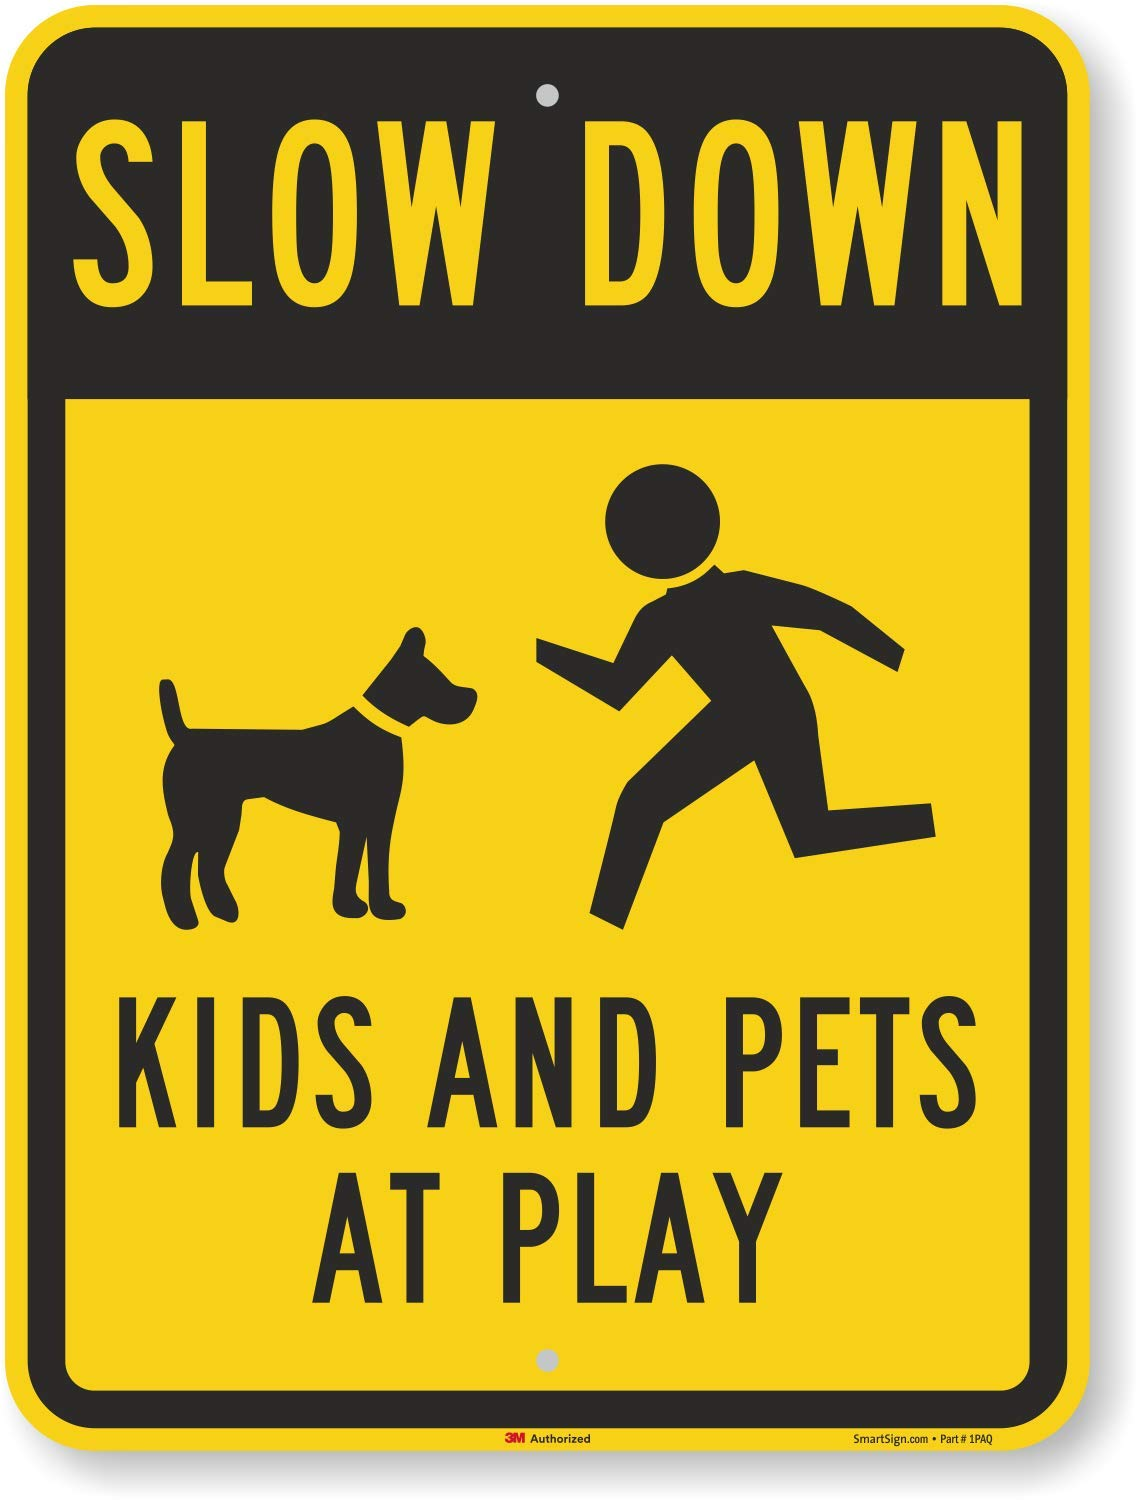 ''Slow Down - Kids And Pets At Play'' Sign By SmartSign   18'' x 24'' 3M High Intensity Grade Reflective Aluminum